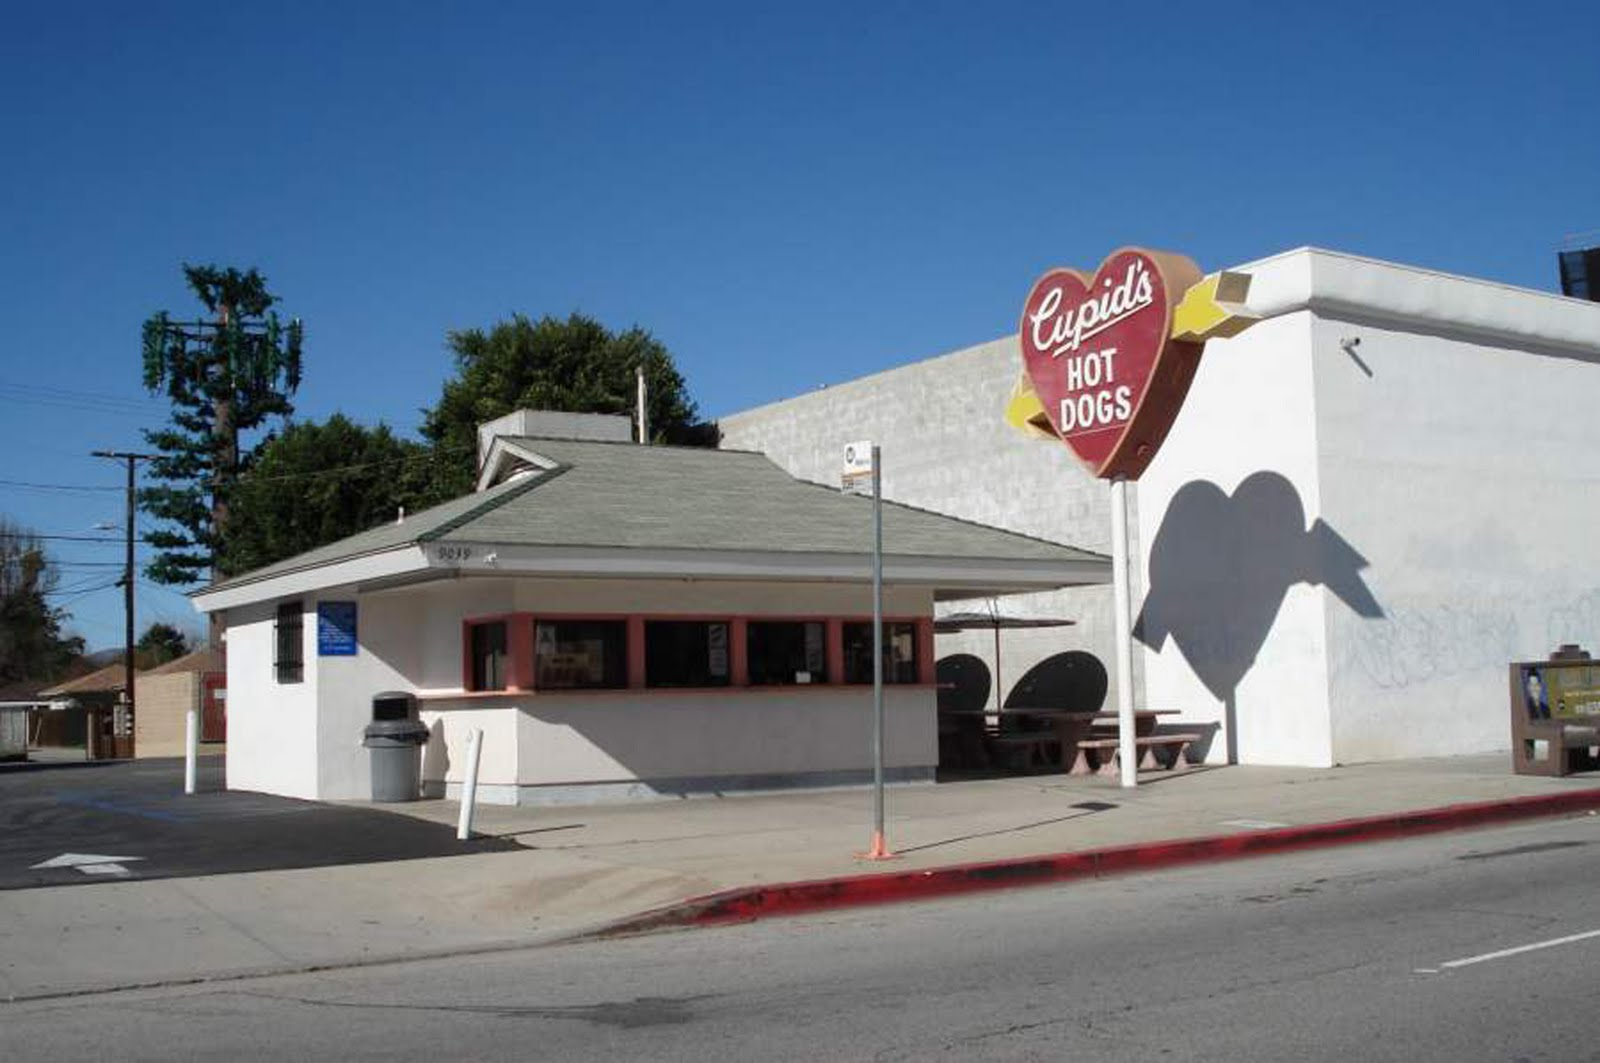 Cupid's 2010 http://museumsanfernandovalley.blogspot.com/2010/04/cupids-hot-dogs-in-northridge.html